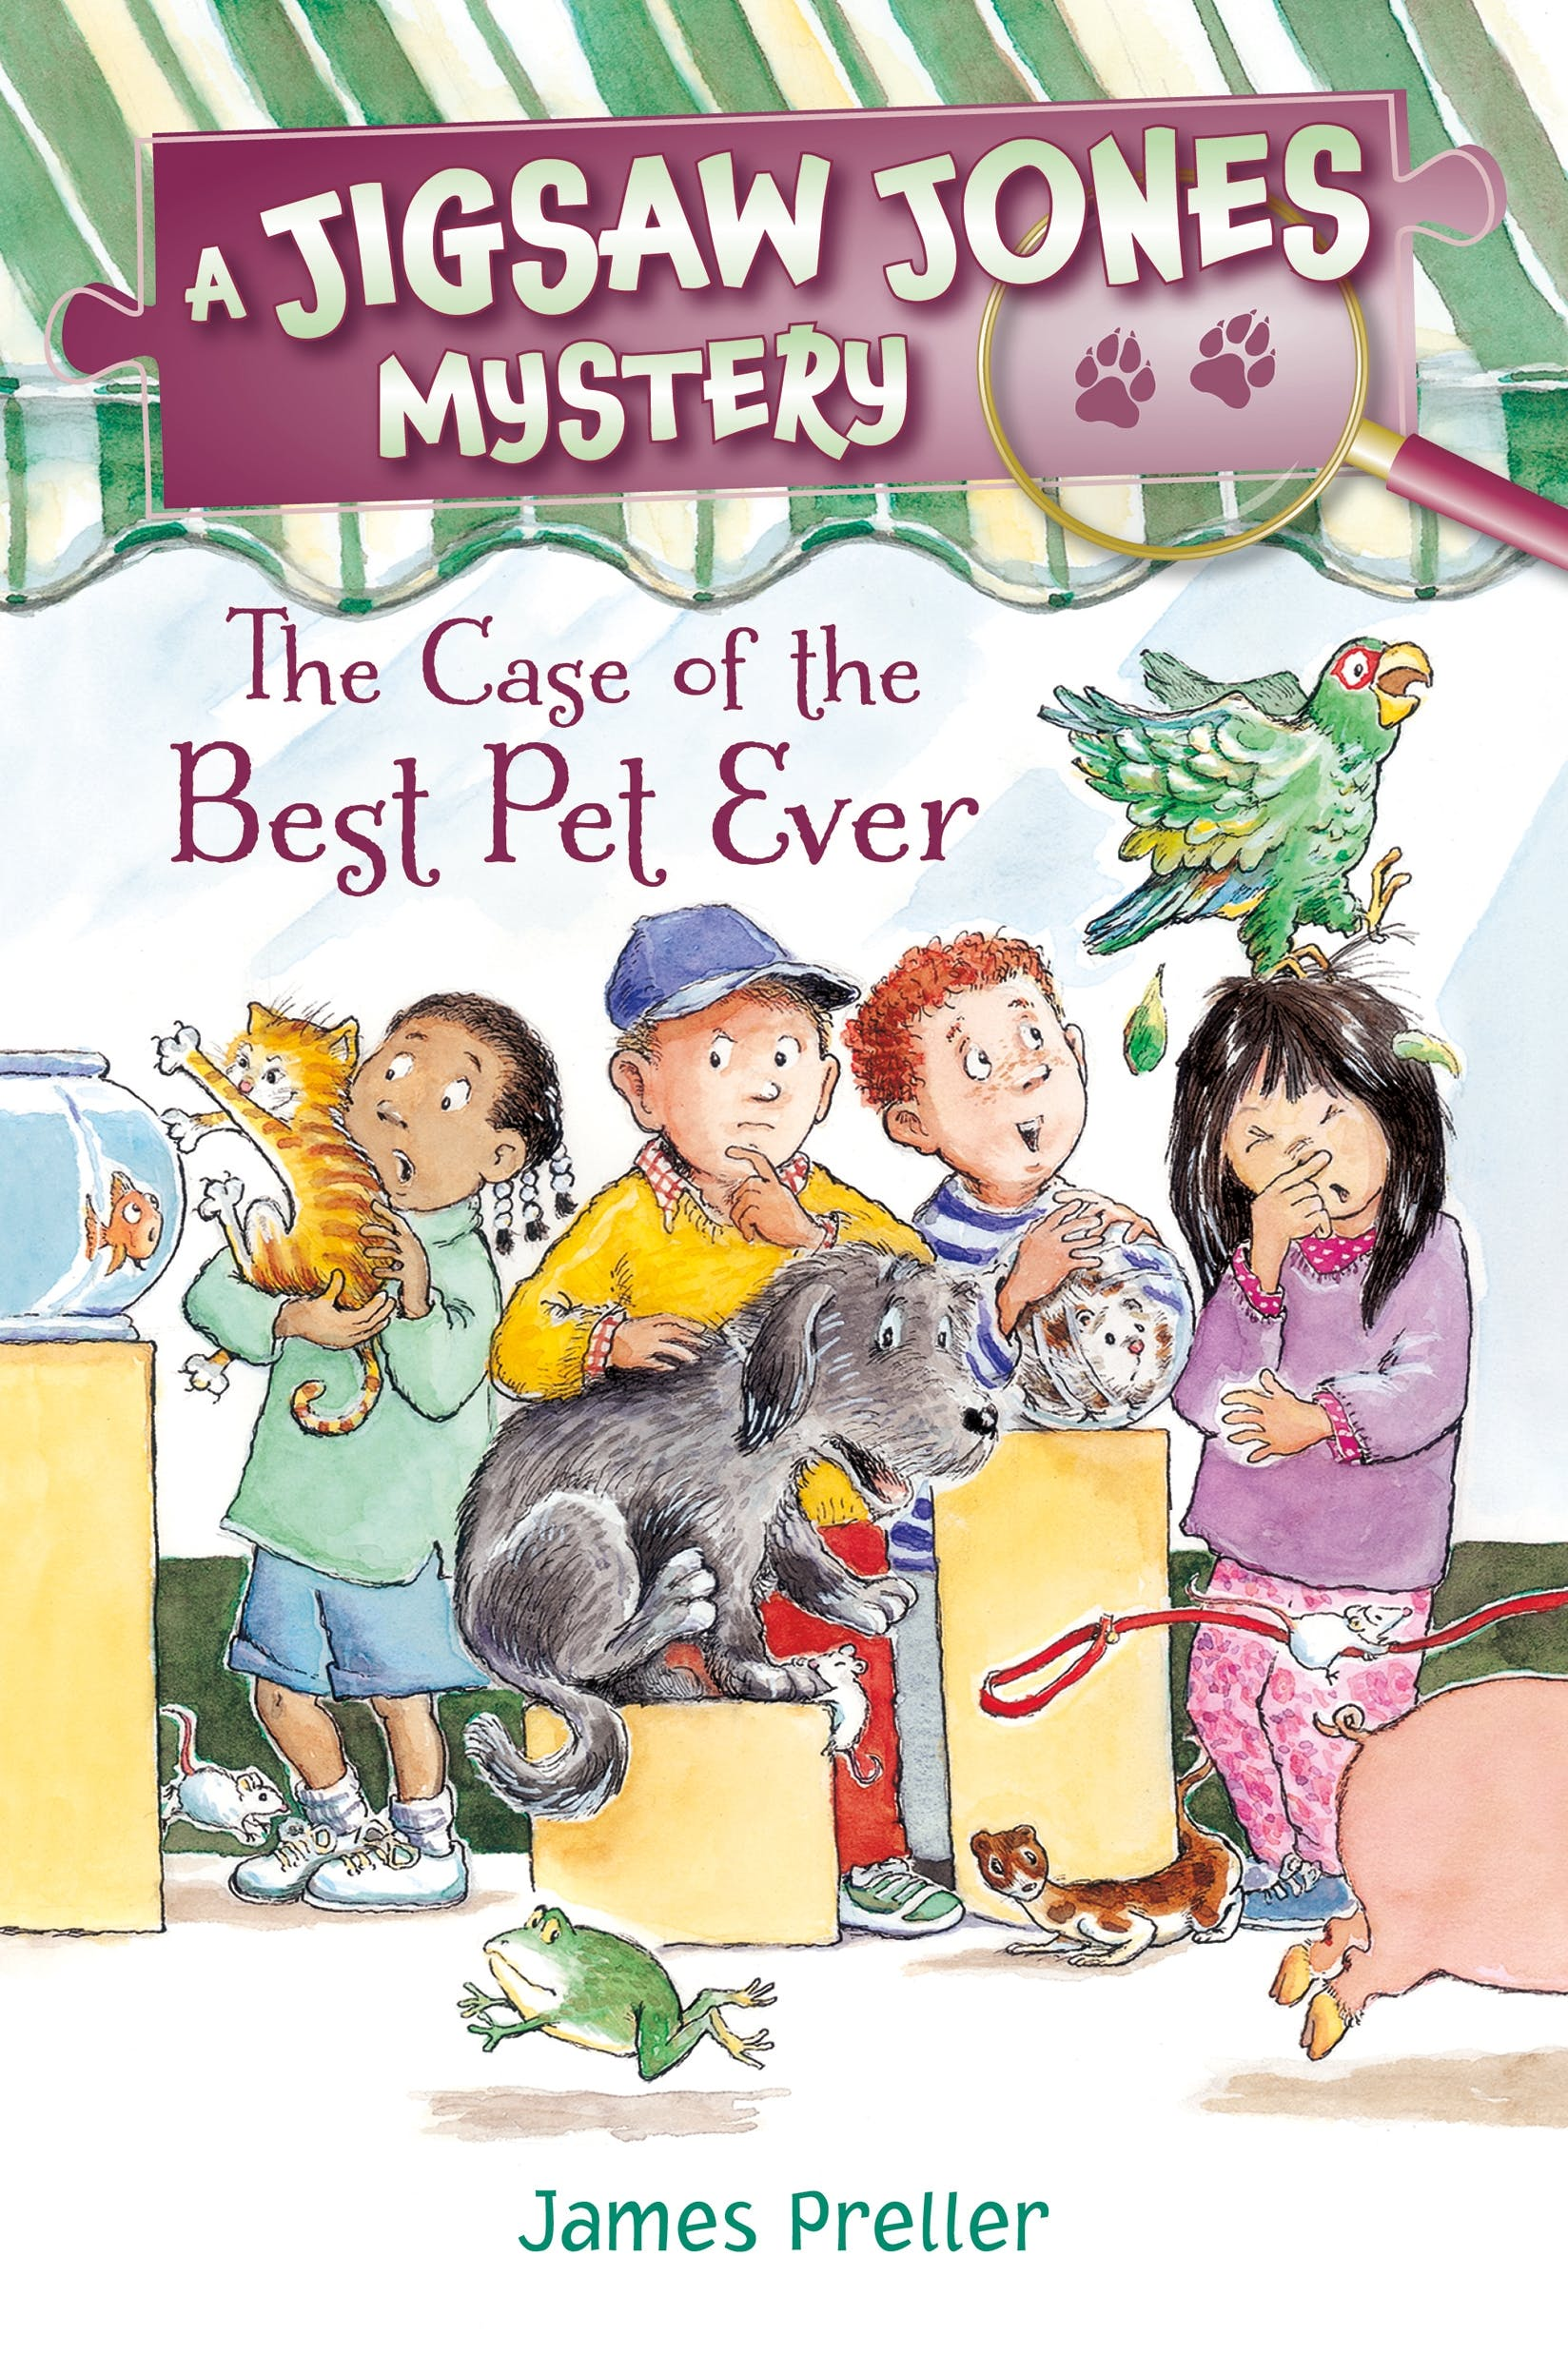 Image of Jigsaw Jones: The Case of the Best Pet Ever